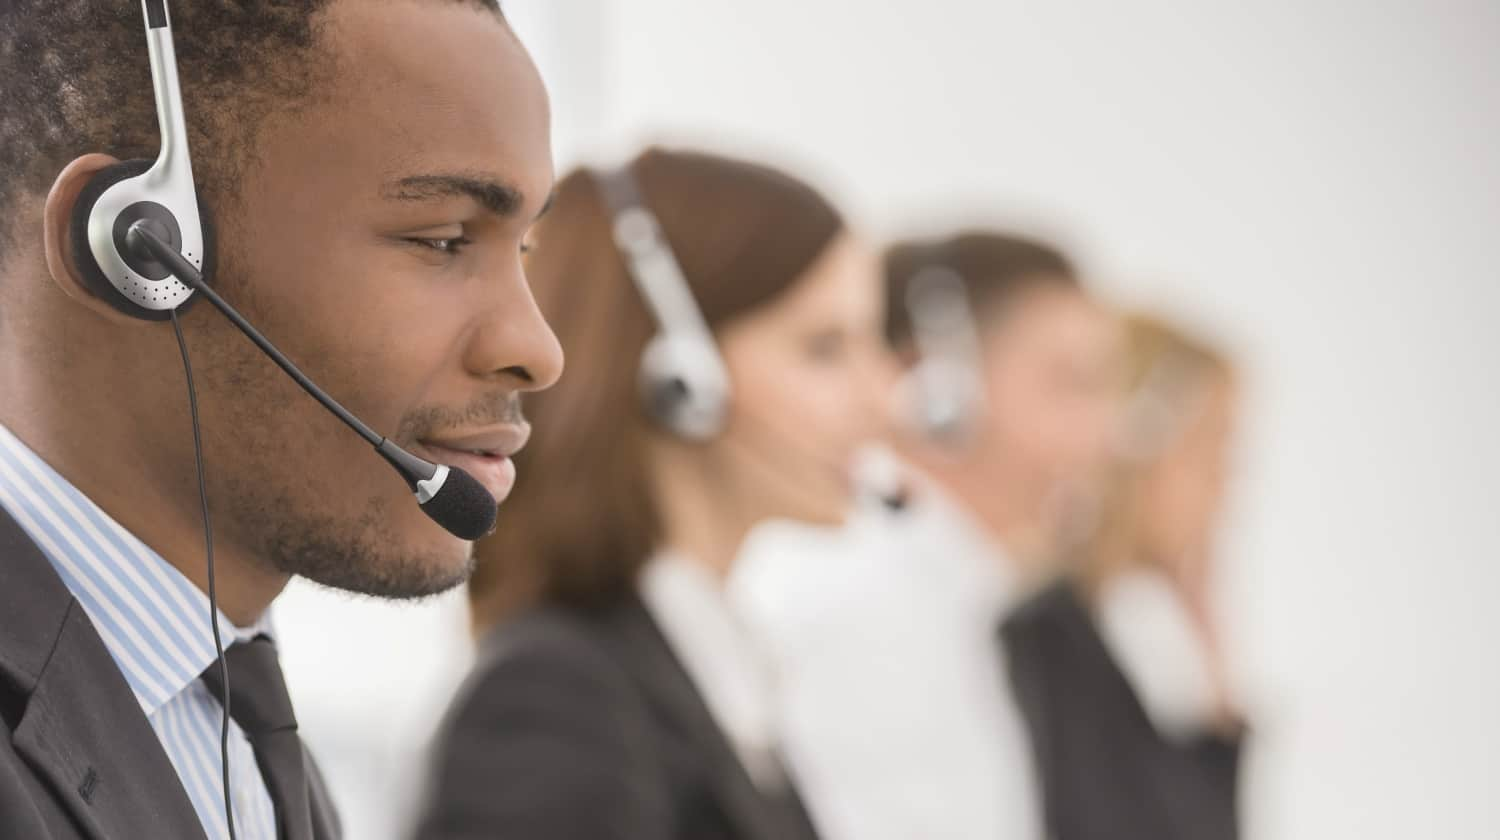 line phone operators with headsets | Verizon Technical Support: Contact Information Cheatsheet | Verizon Technical Support | Verizon Wireless | Featured